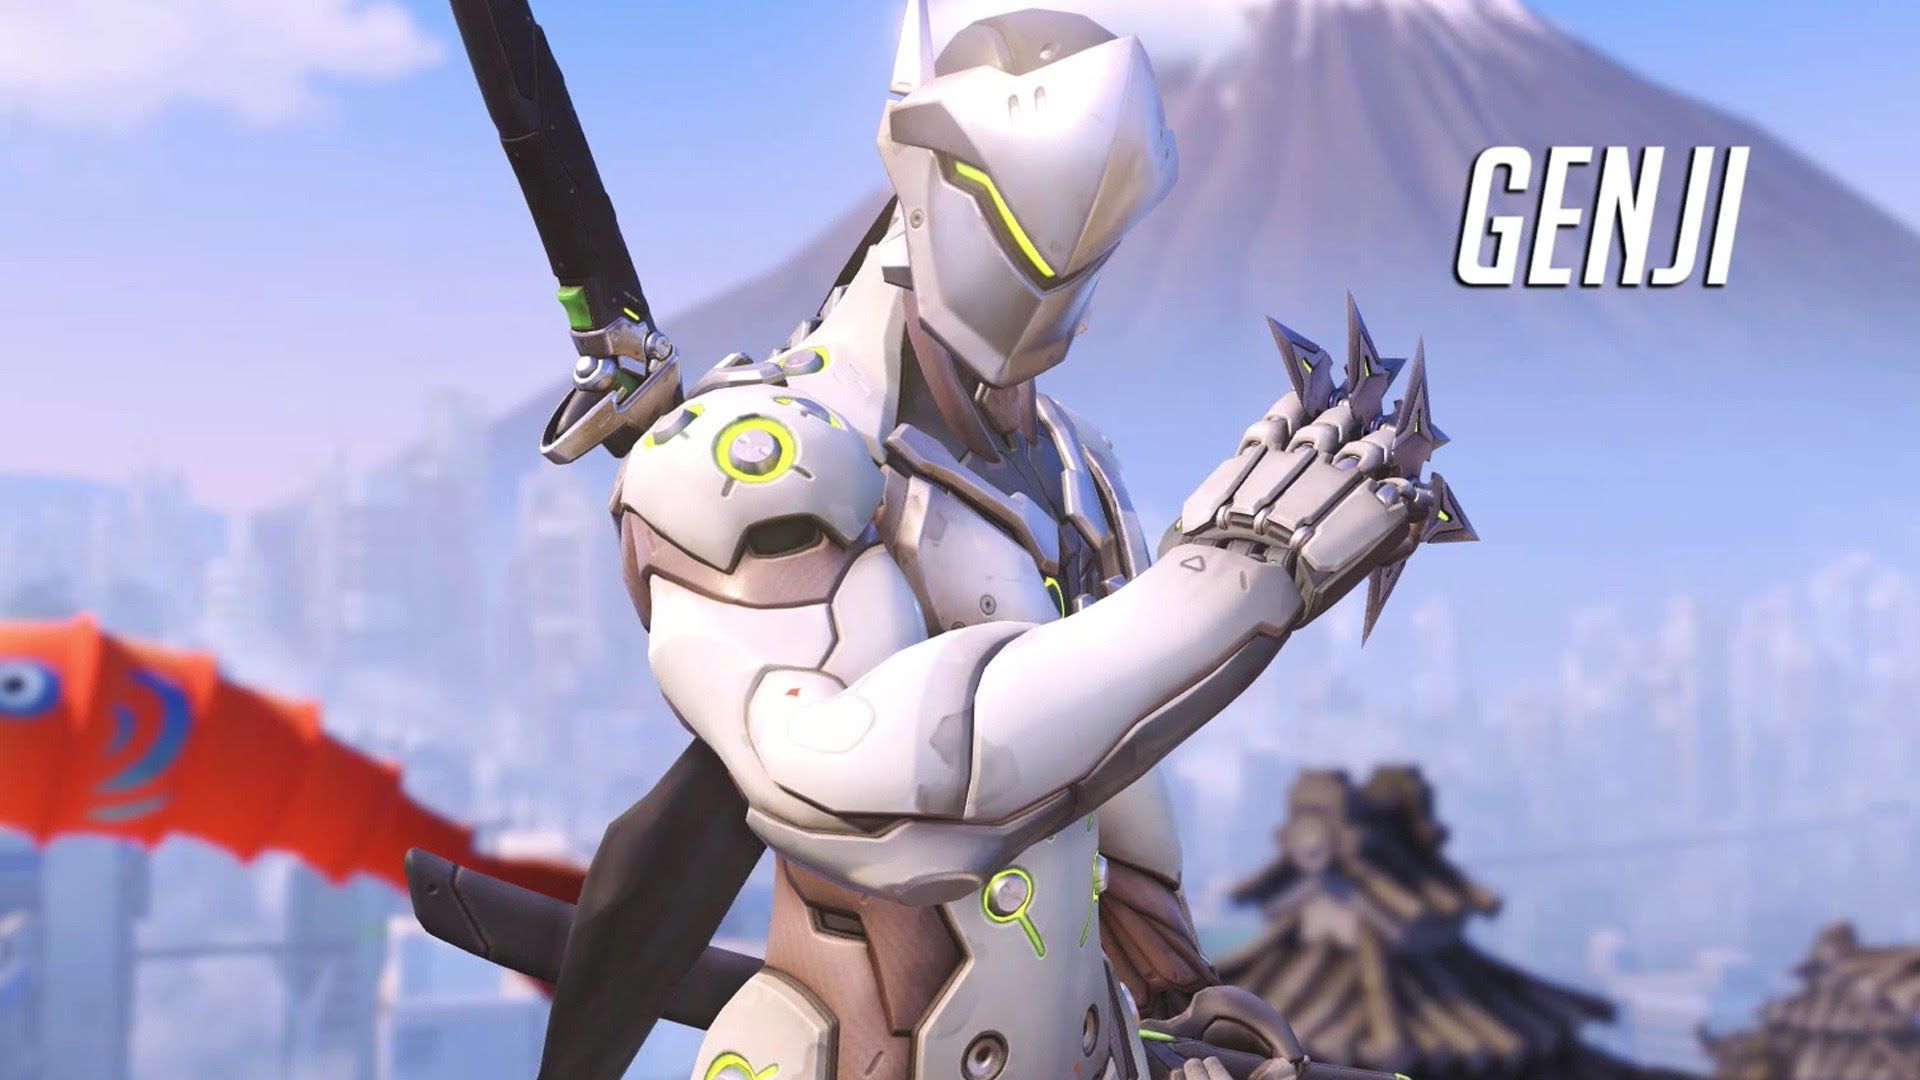 Overwatch : Genji Wallpapers